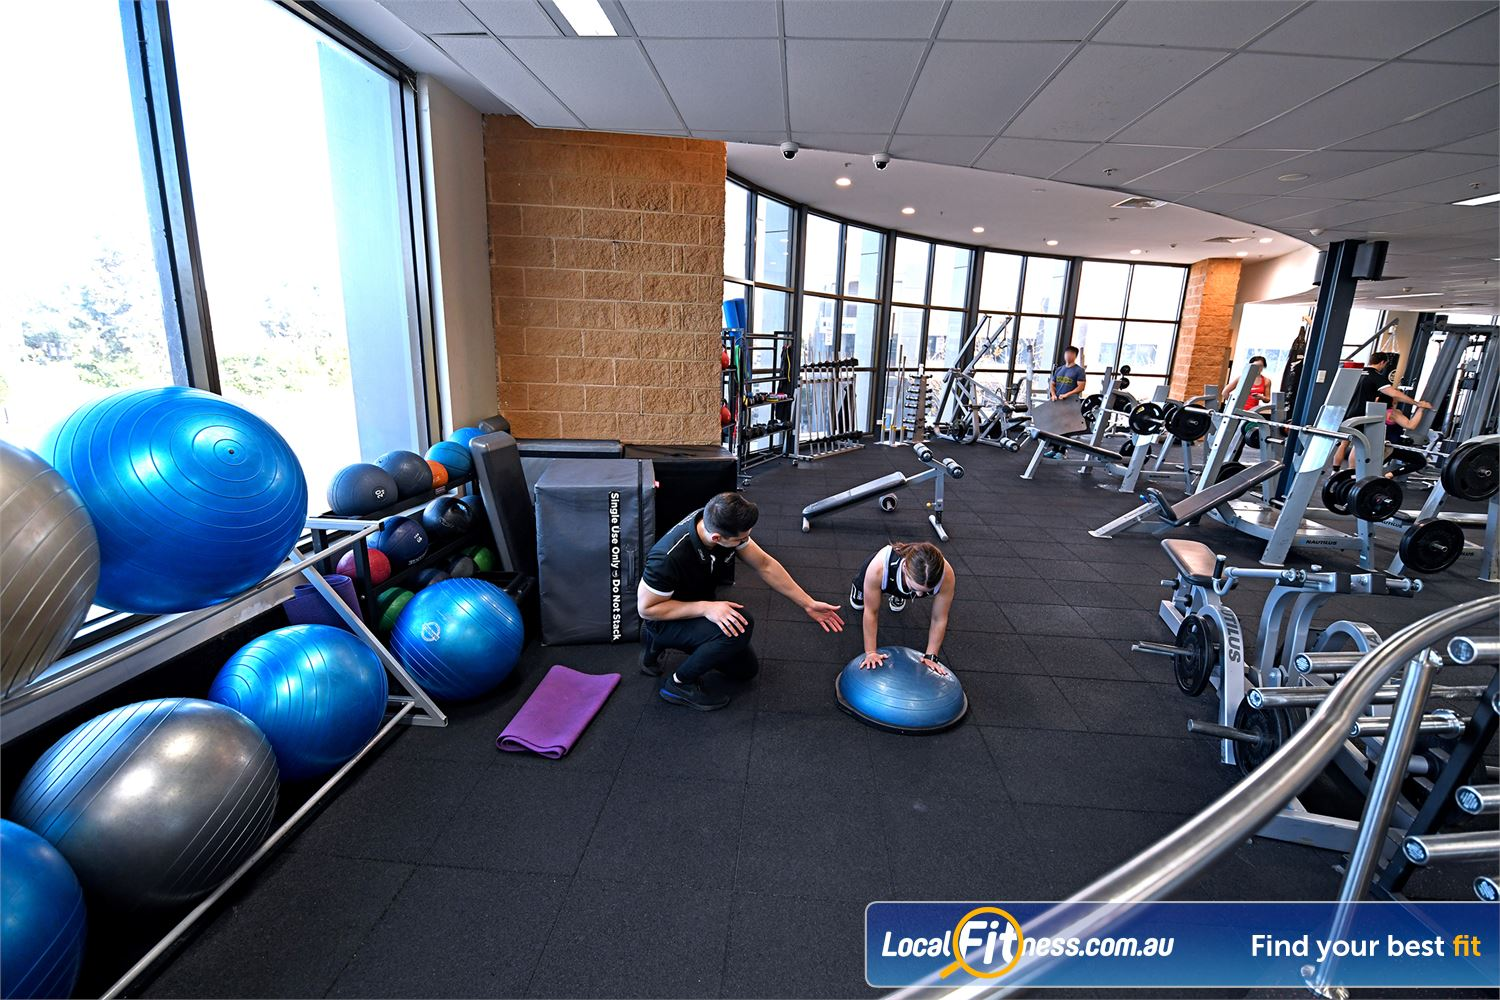 Goodlife Health Clubs Near Werribee Fully equipped stretching and abs zone.